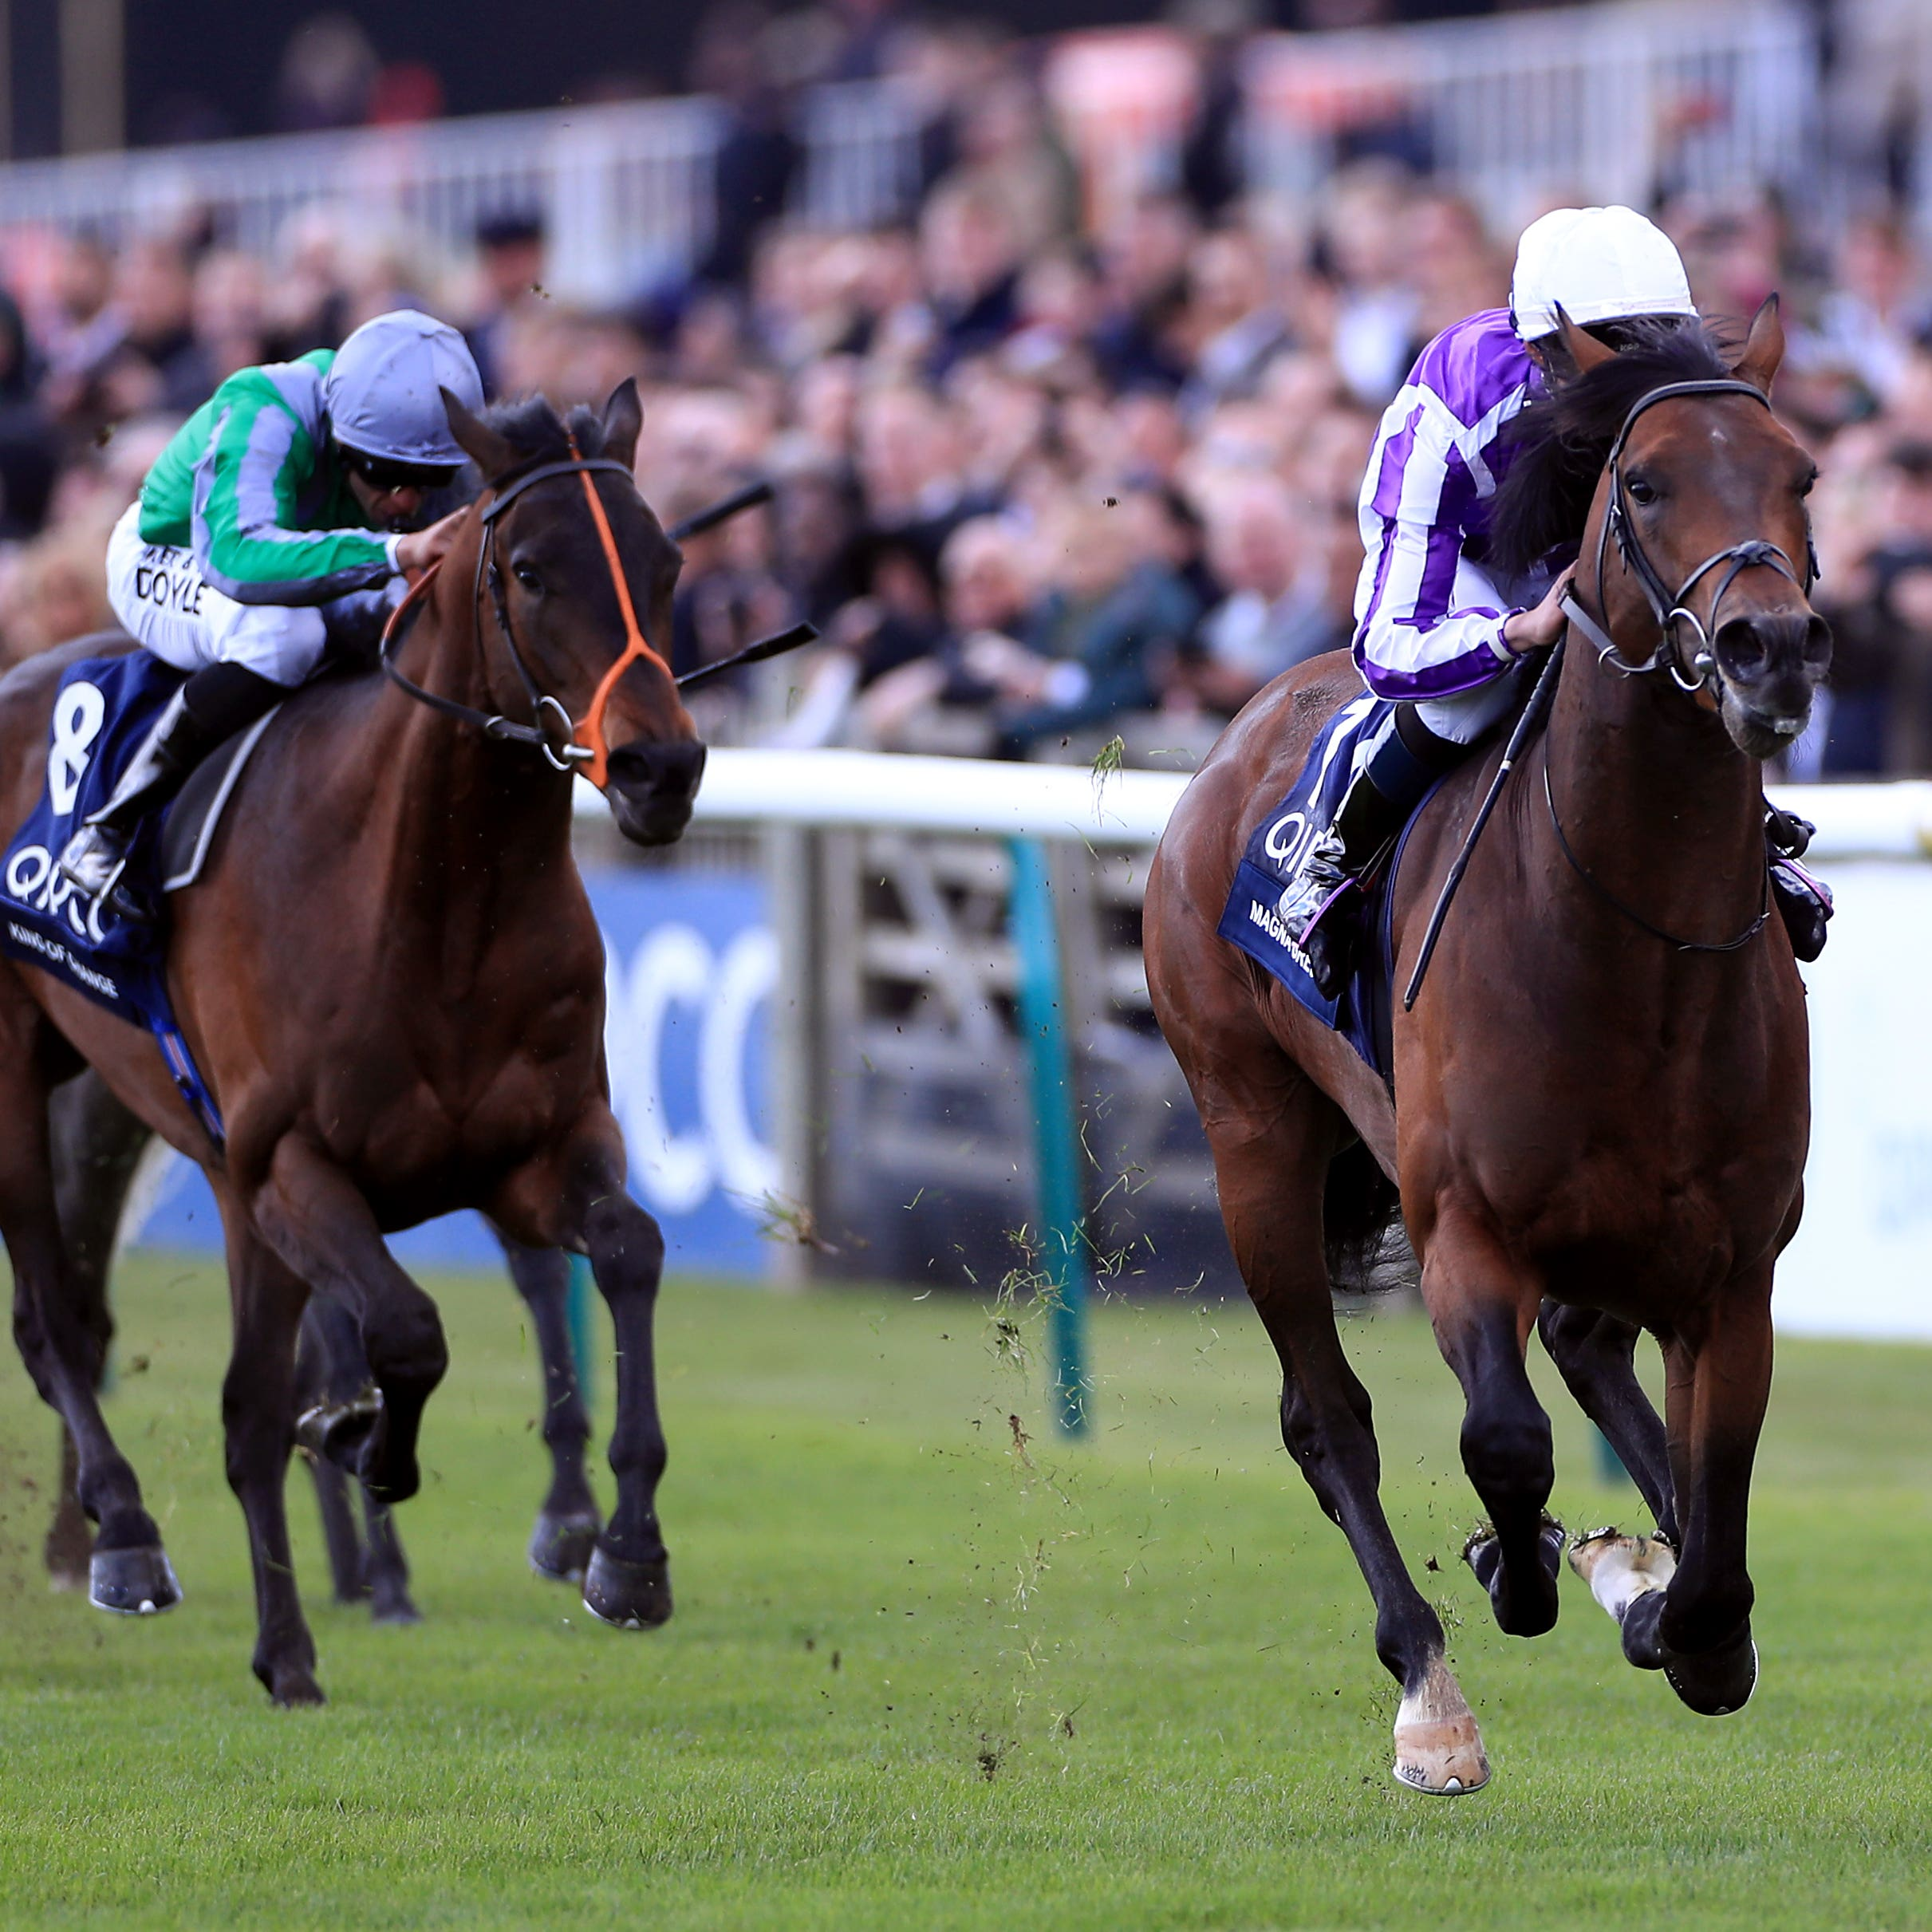 King Of Change (left) chases home Magna Grecia in the 2000 Guineas